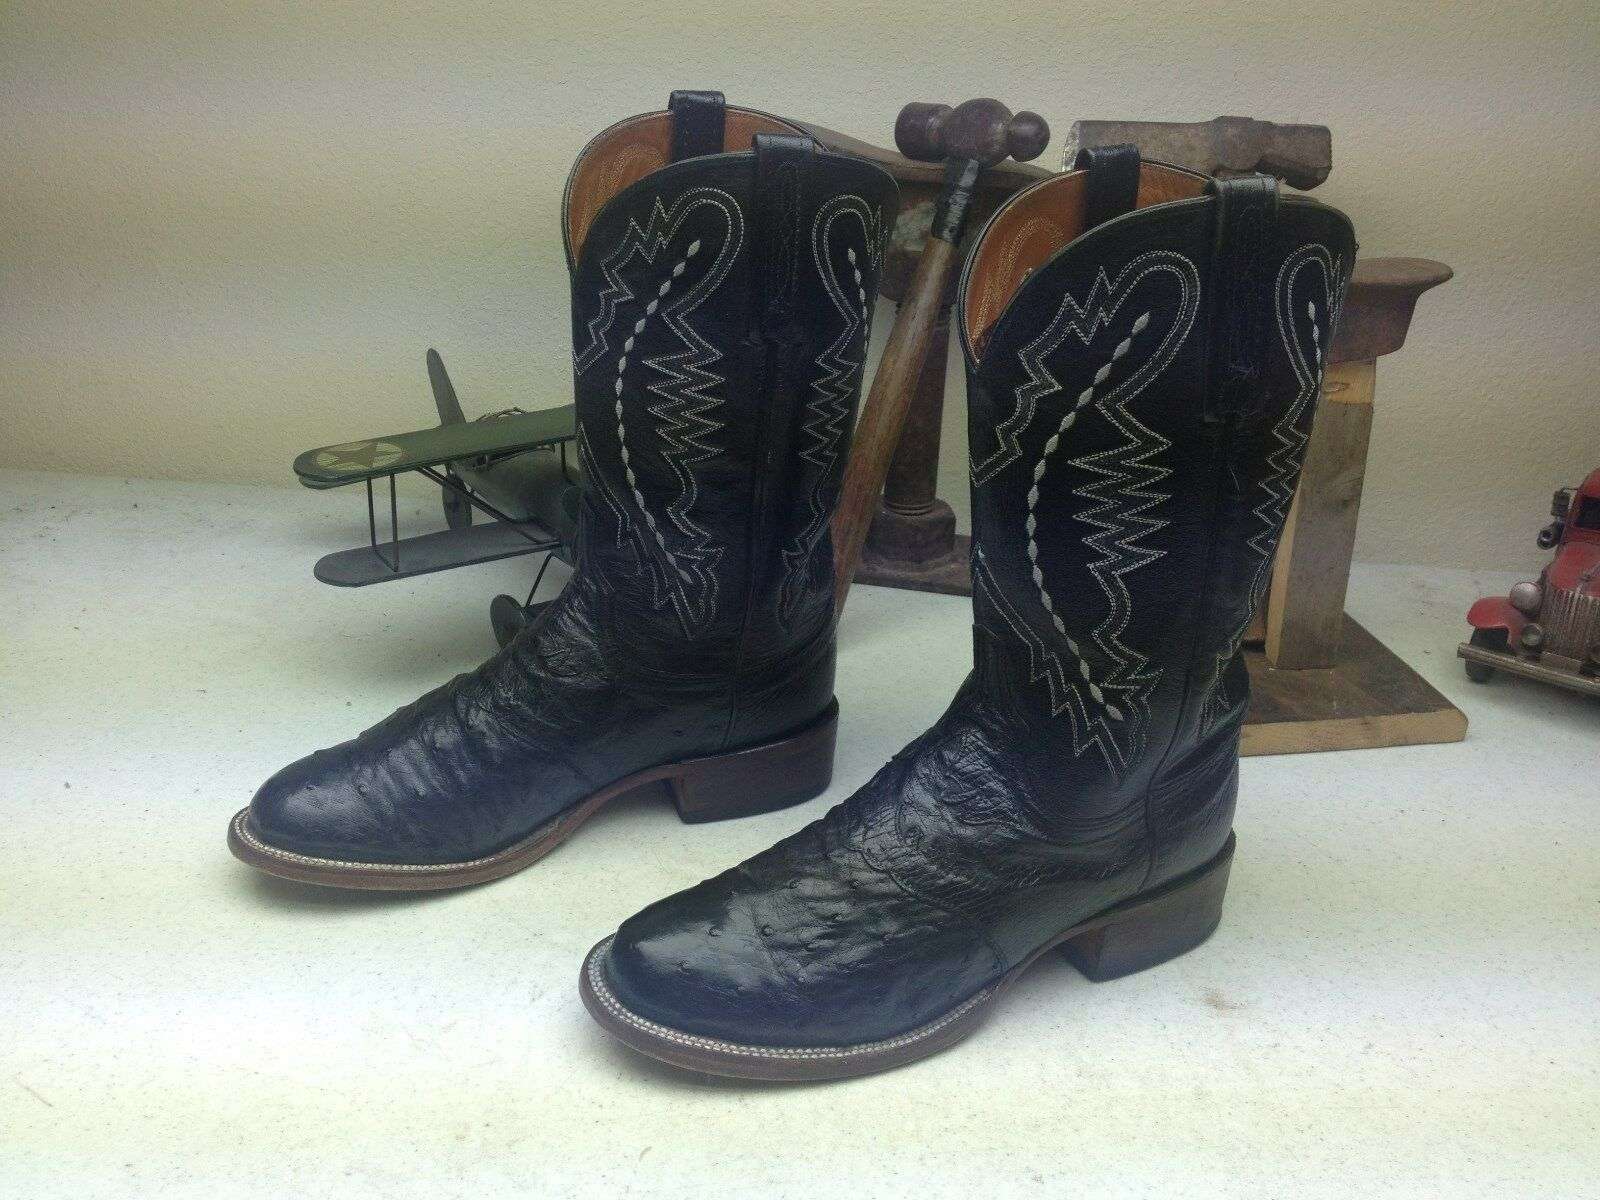 BLACK LUCCHESE DISTRESSED OSTRICH LEATHER ENGINEER TRAIL BOSS BOOTS 8 M